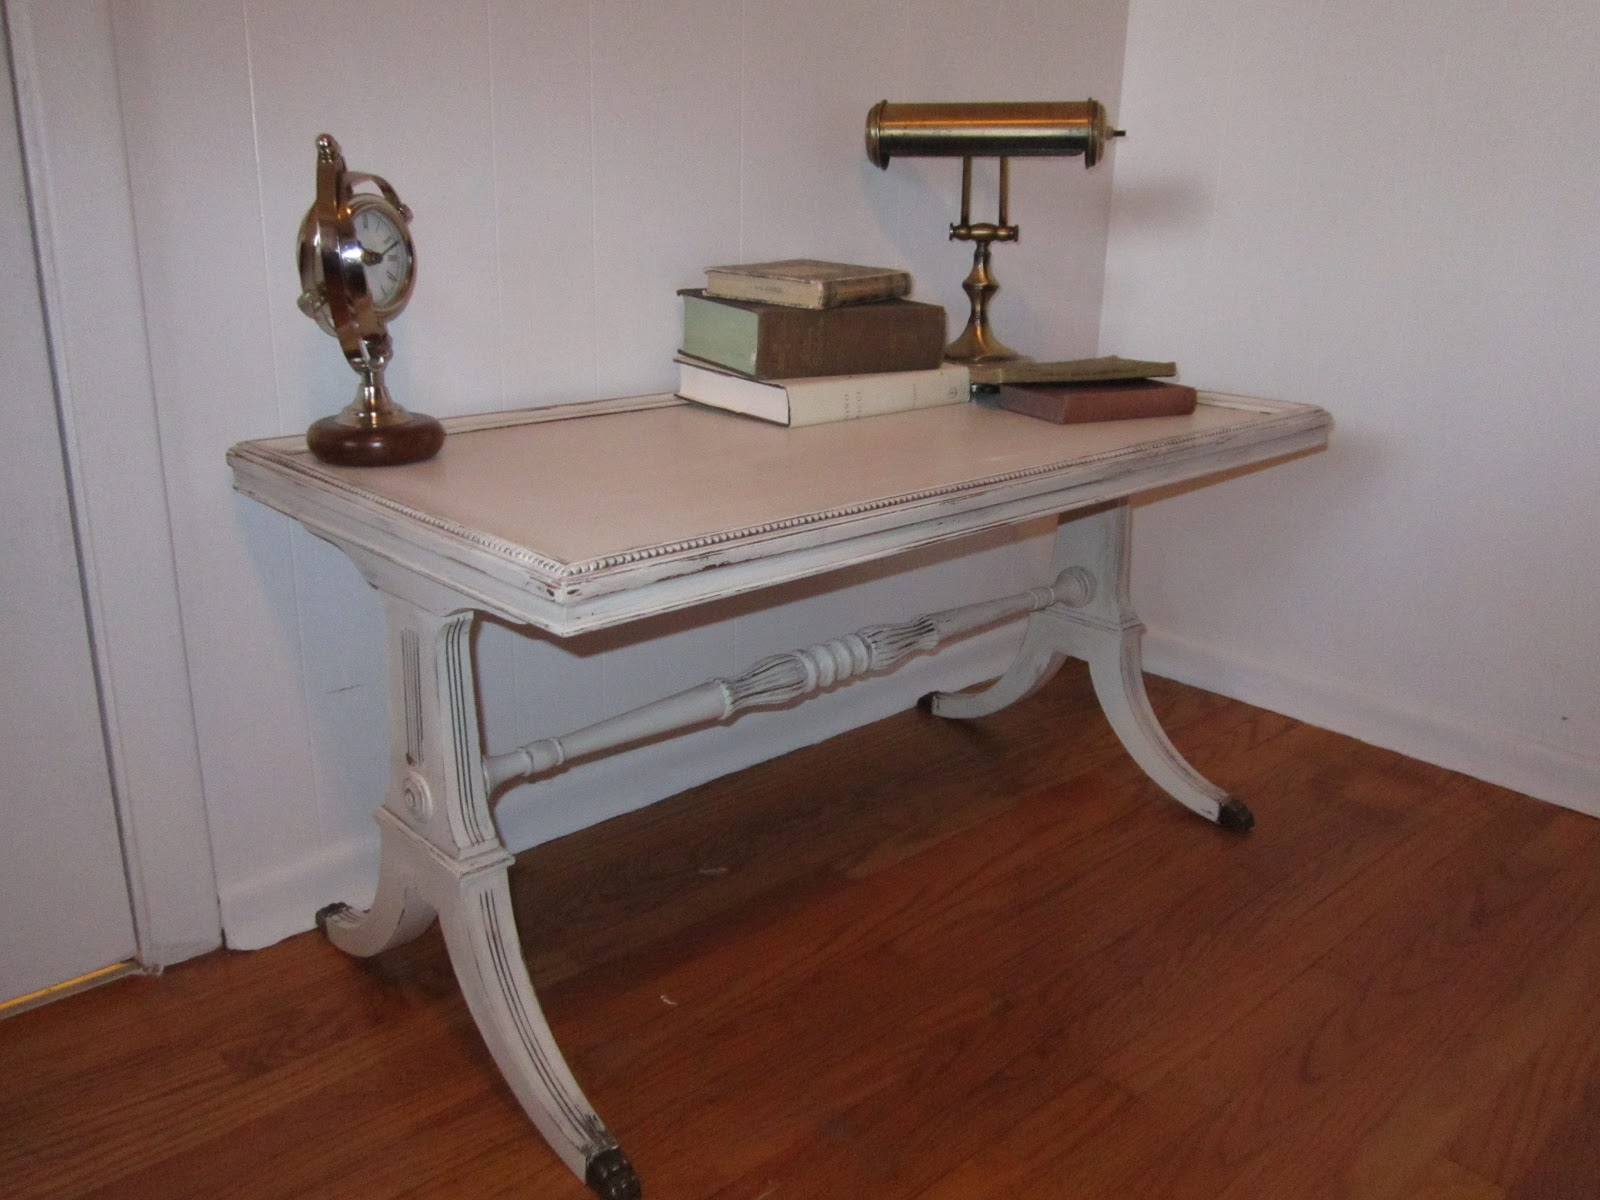 Wel e to Sage & Balm Distressed Duncan Phyfe coffee table in